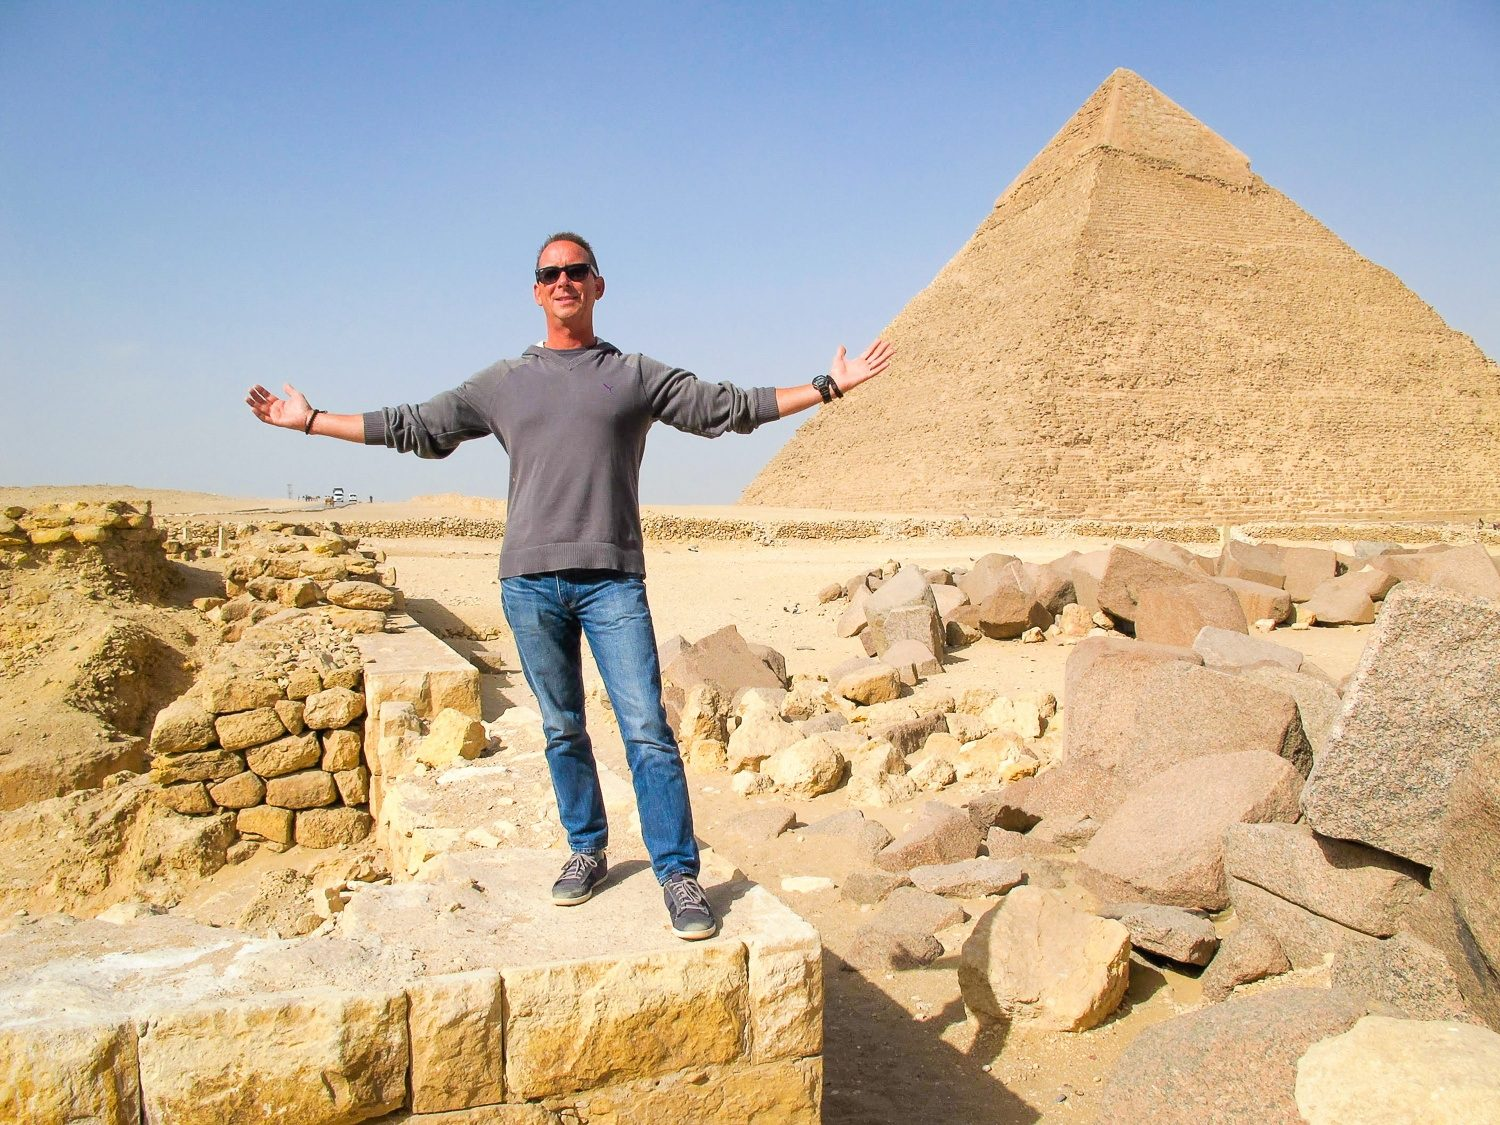 At the Giza, Egypt pyramids: one of Mark's lifelong dreams.